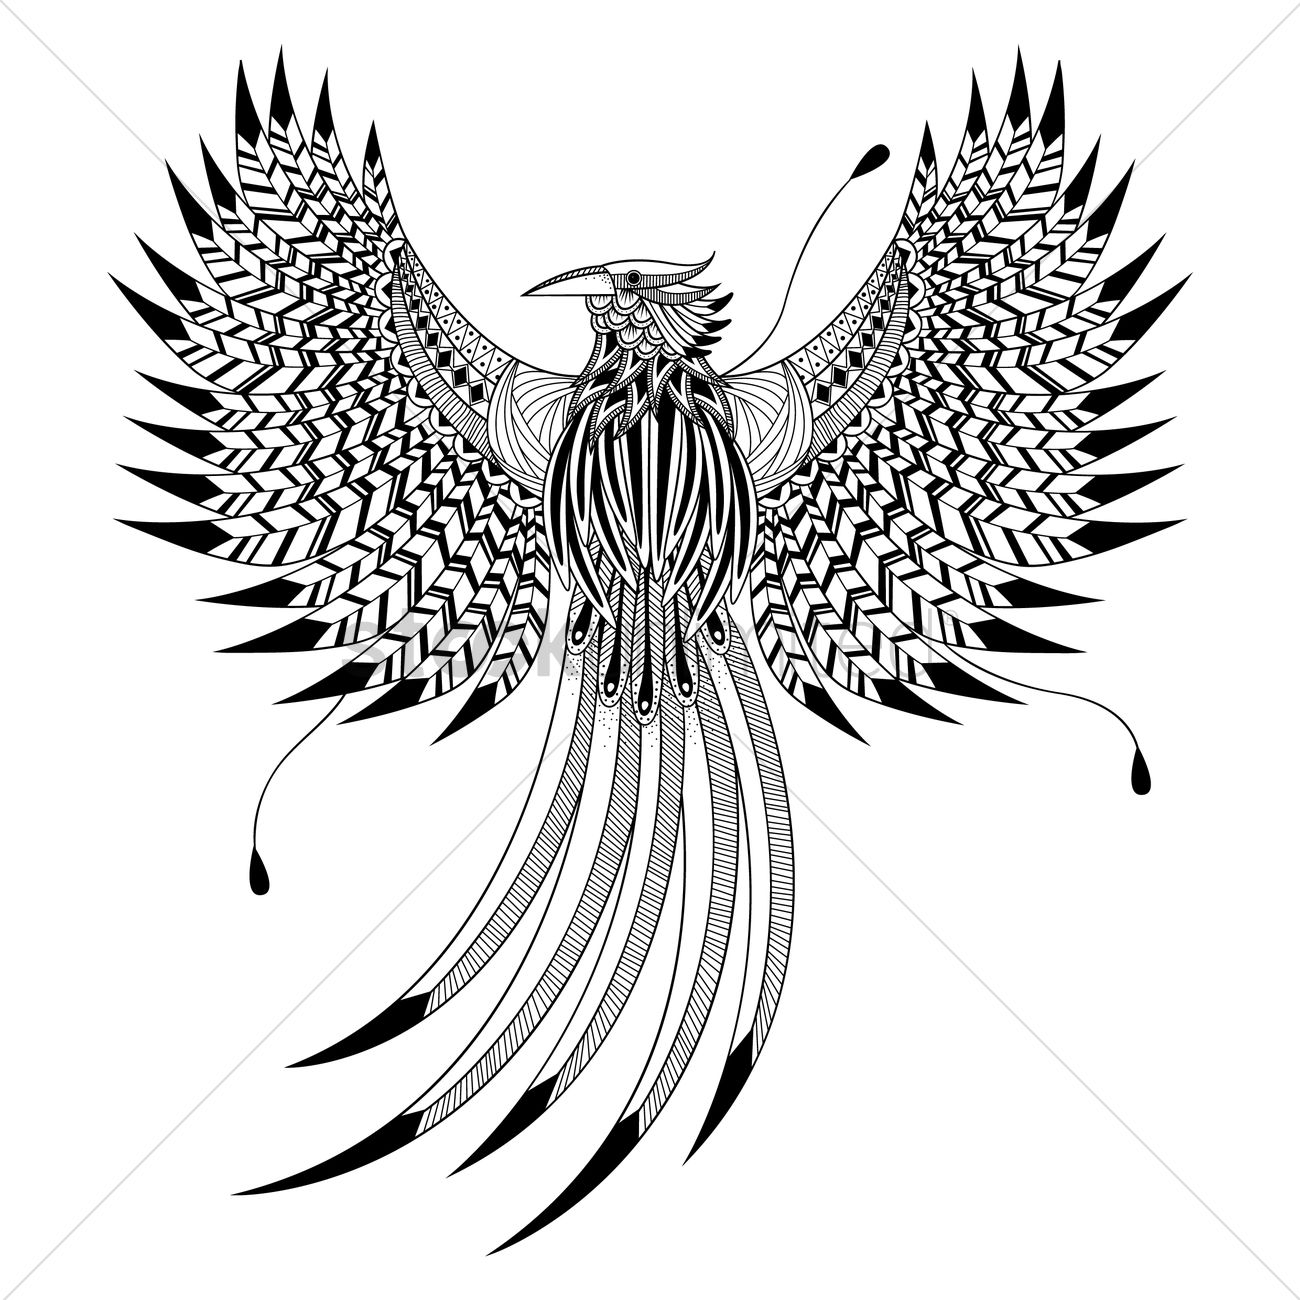 Intricate bird design Vector Image - 1623183 | StockUnlimited